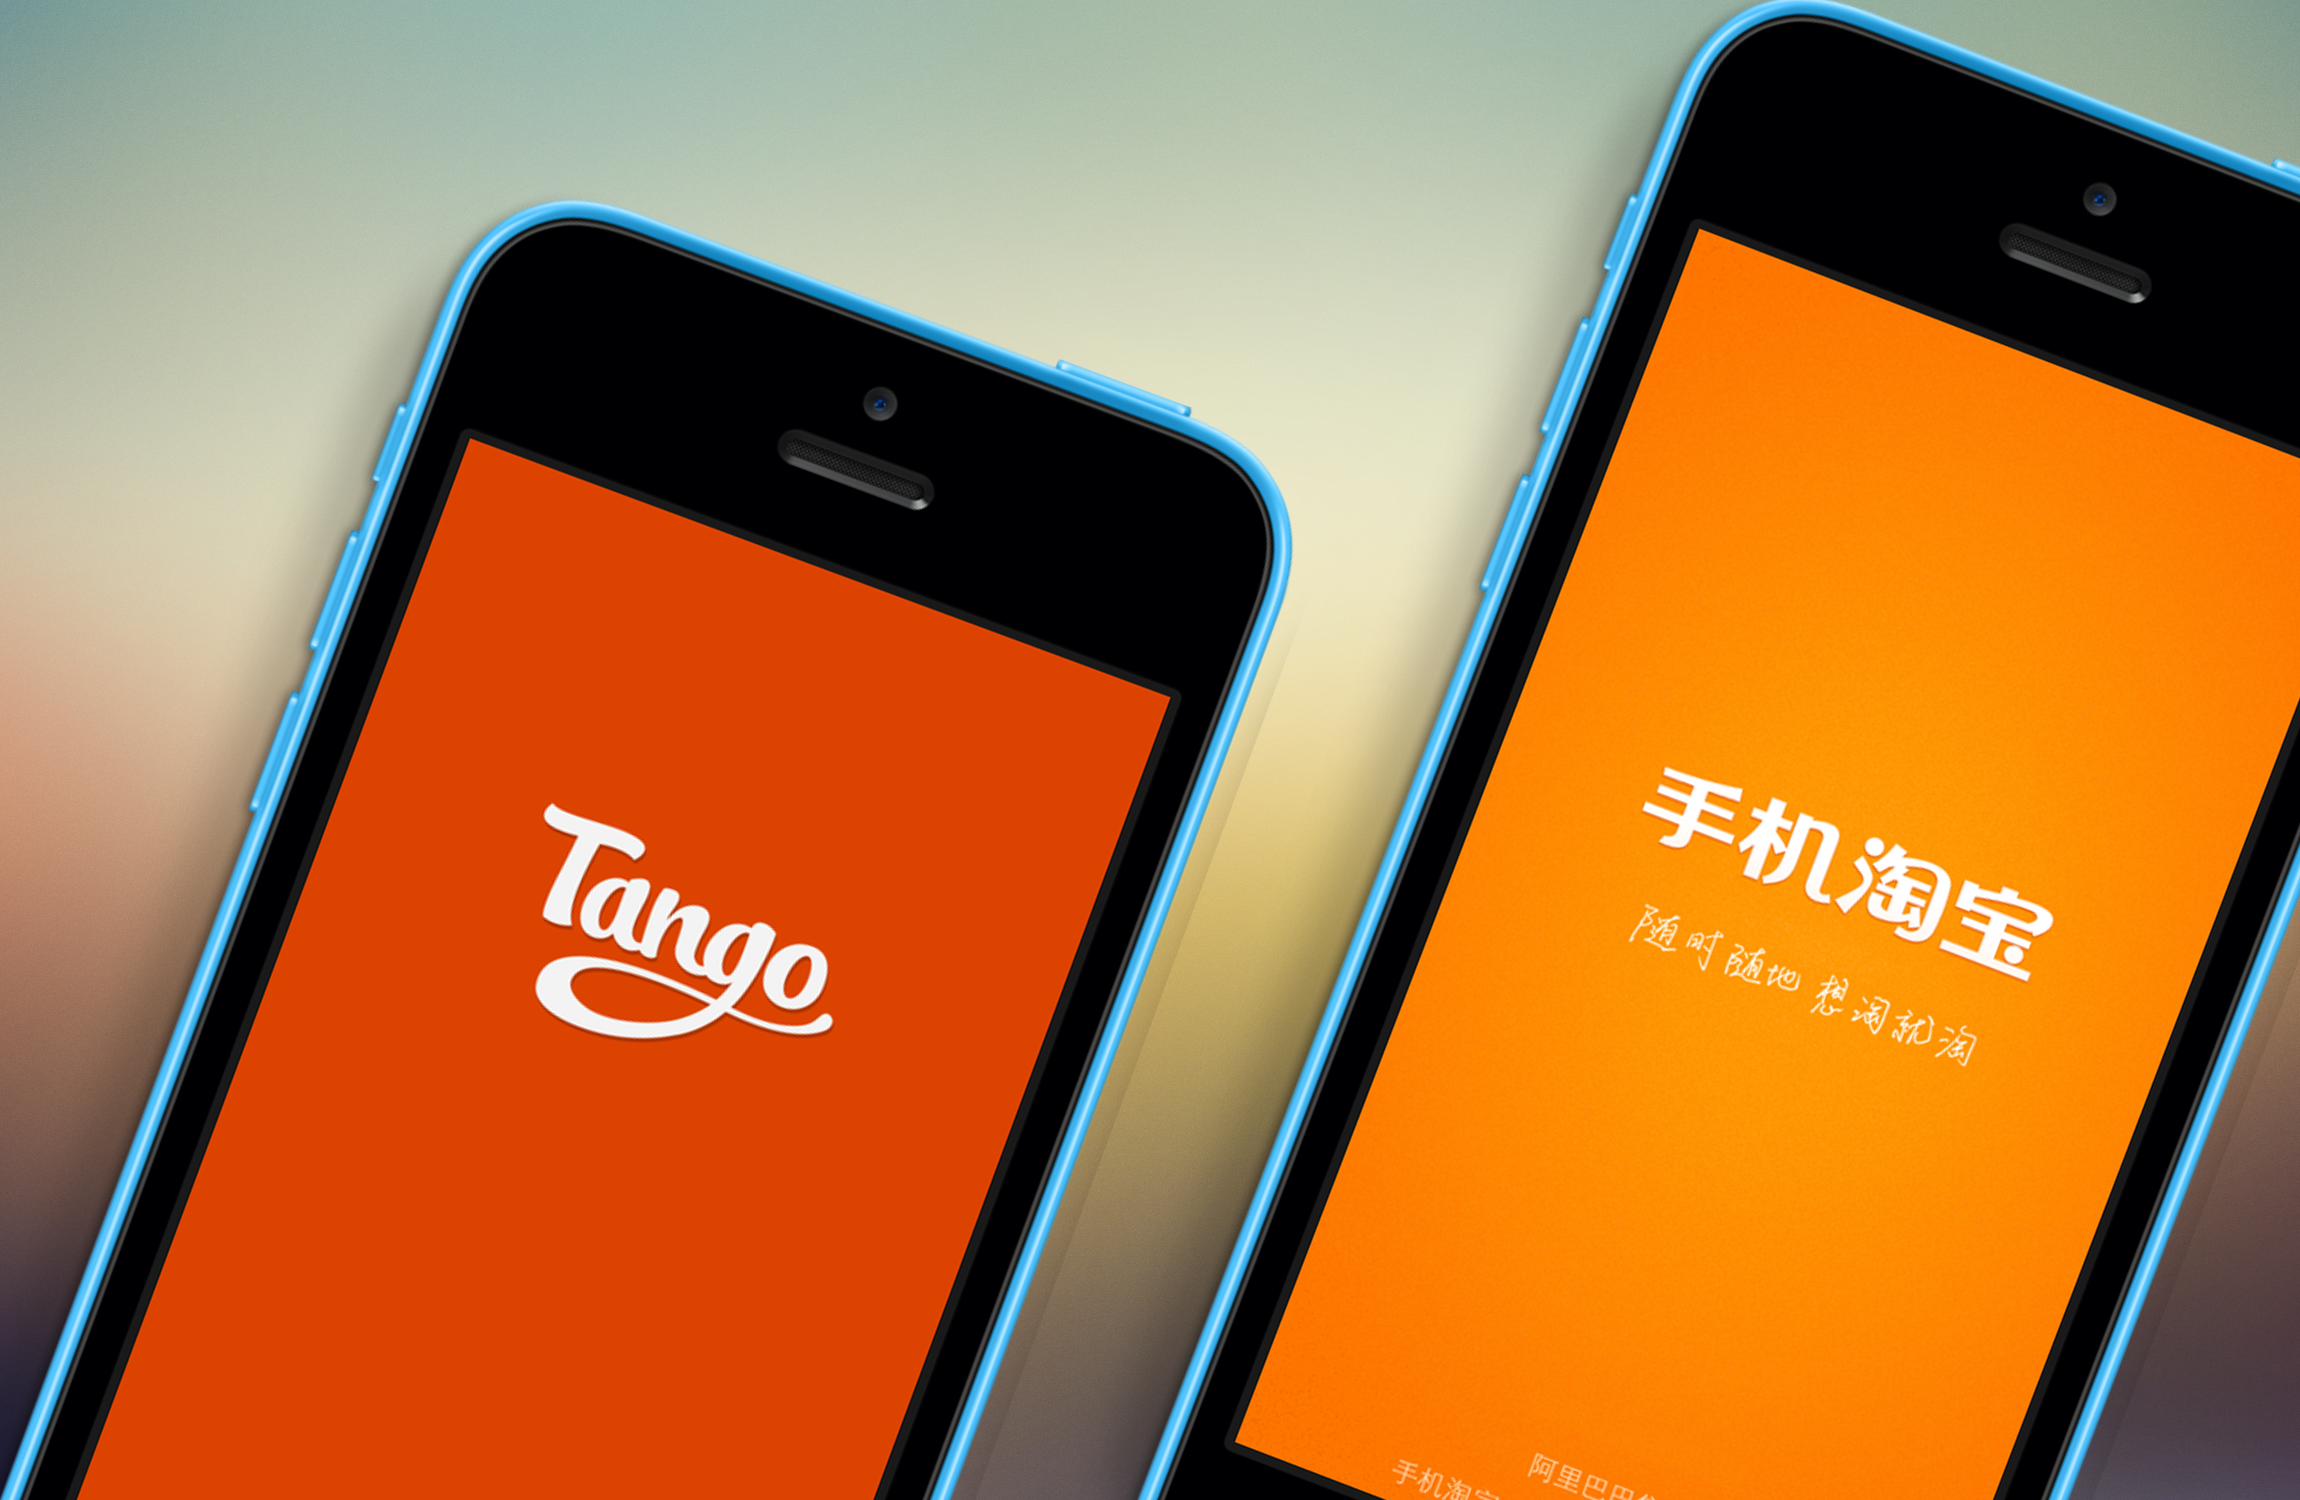 Why Did Alibaba Invest 215 Million In Tango The alibaba.com app is a leading wholesale mobile marketplace for global trade. why did alibaba invest 215 million in